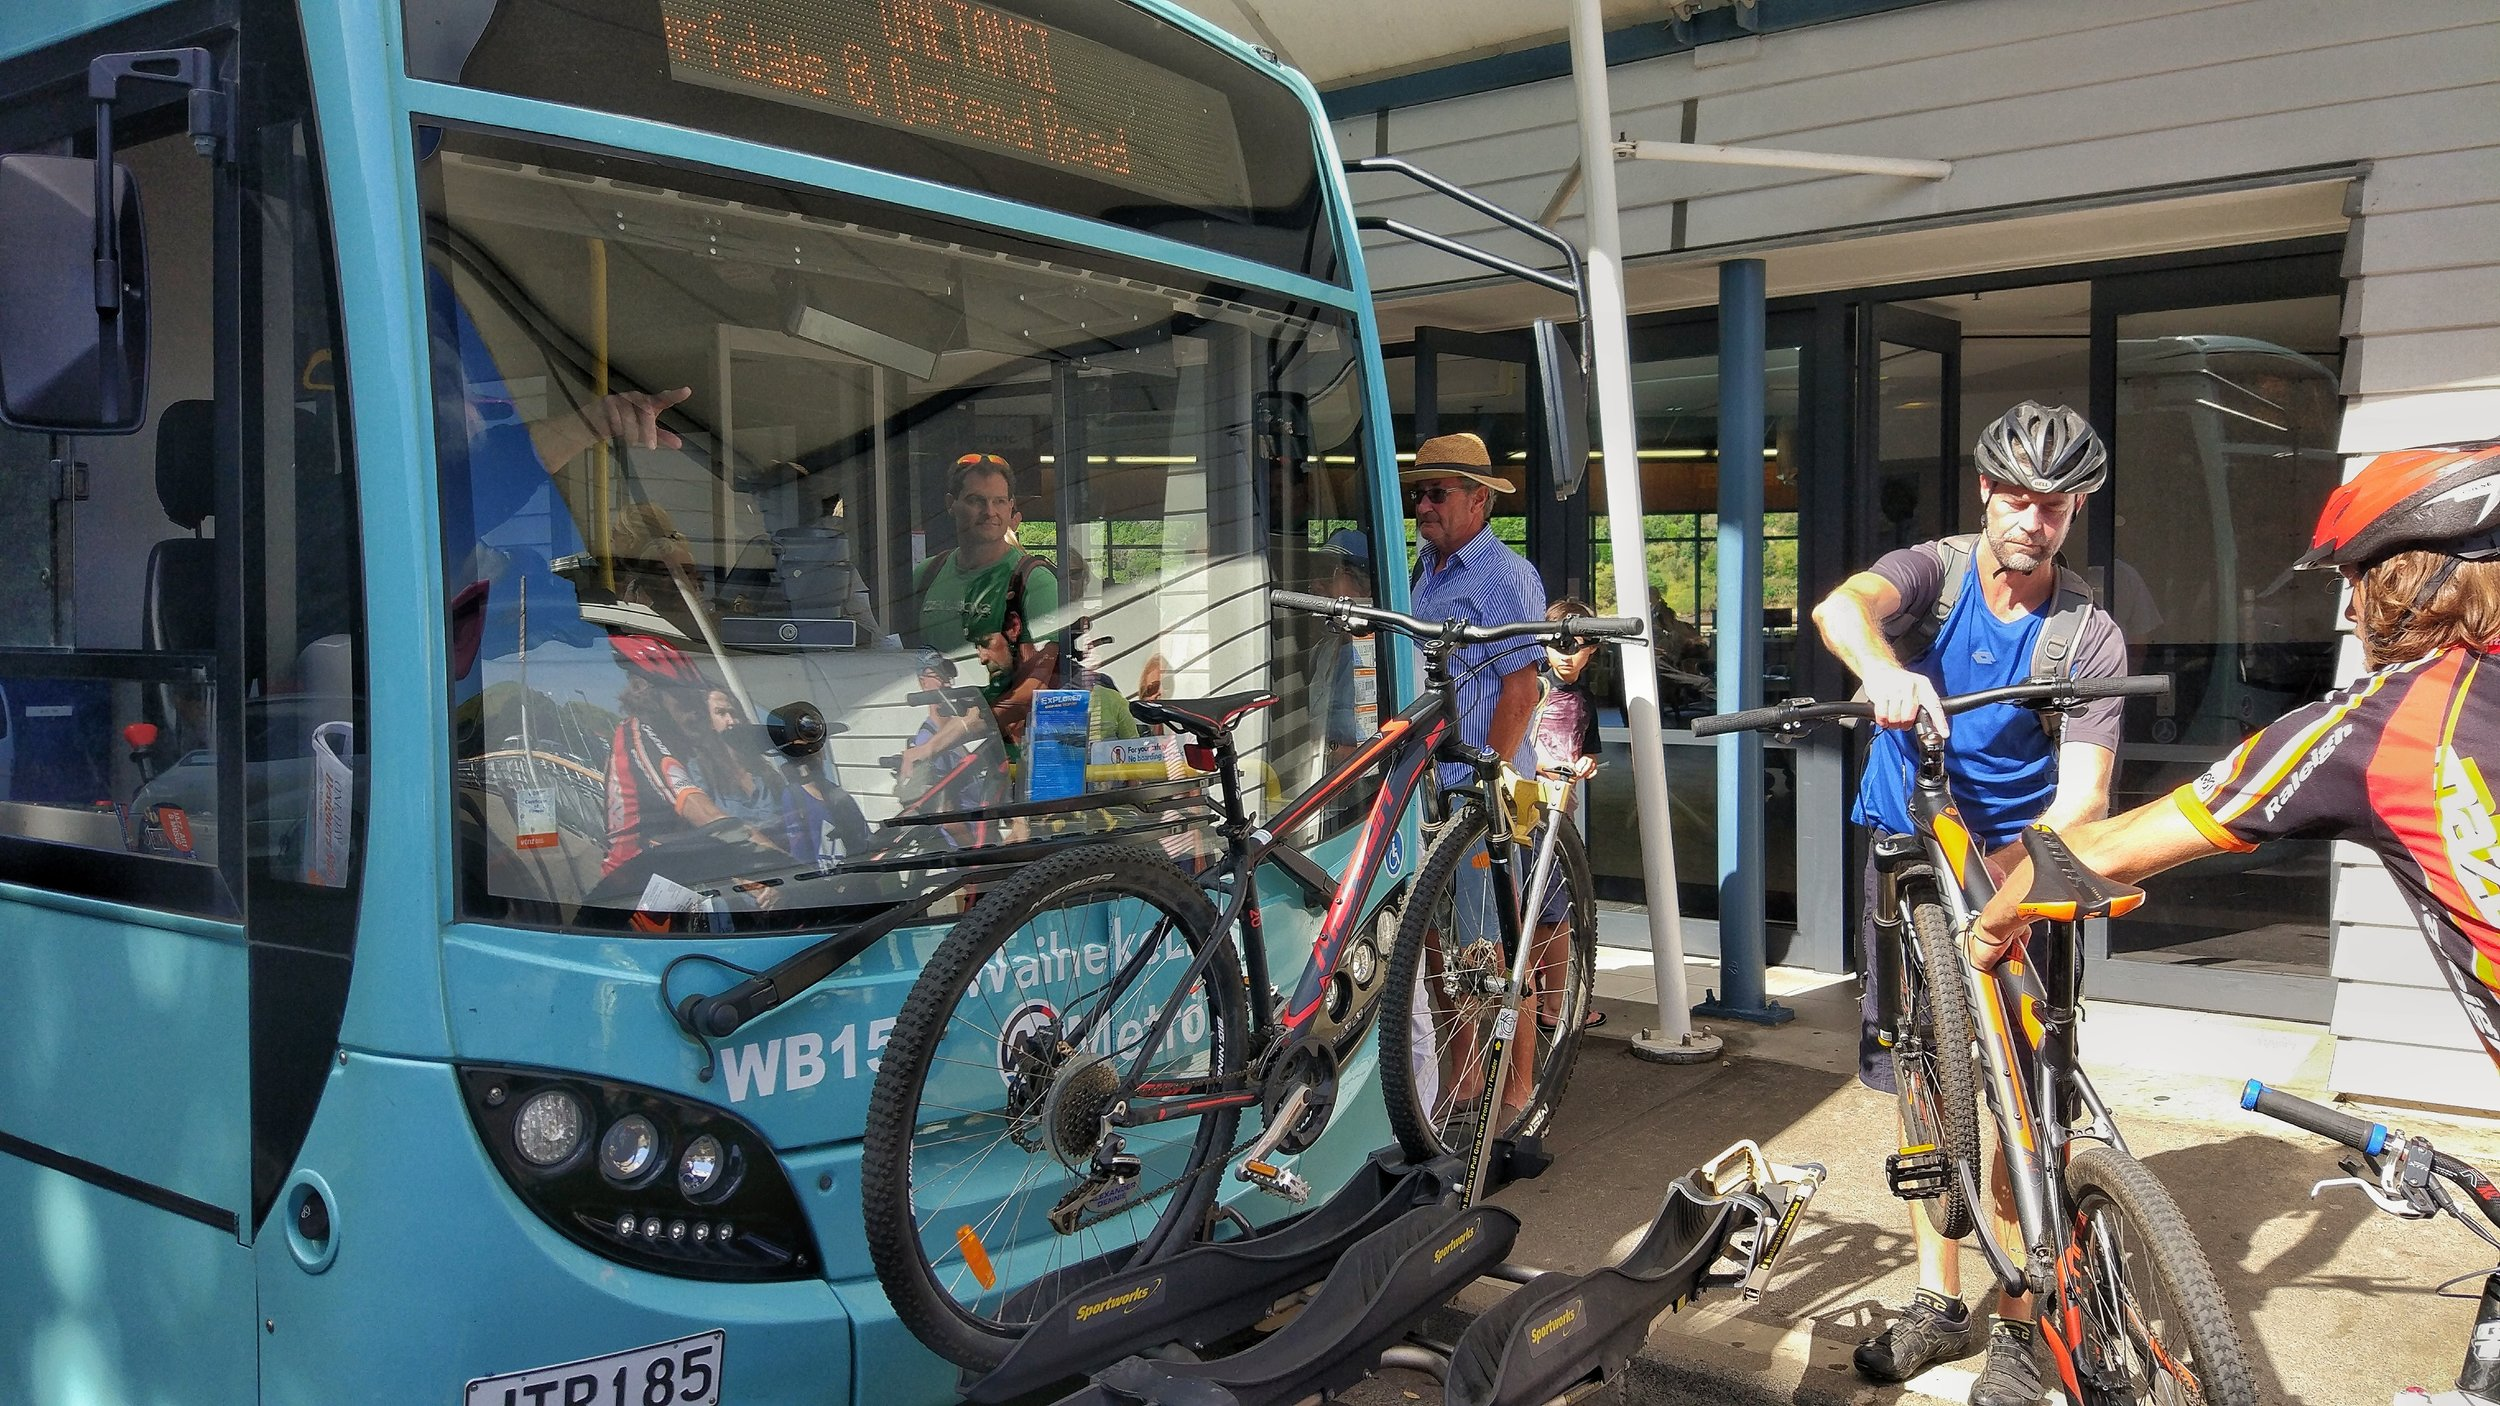 Bikes on buses on Waiheke. We were lucky this time